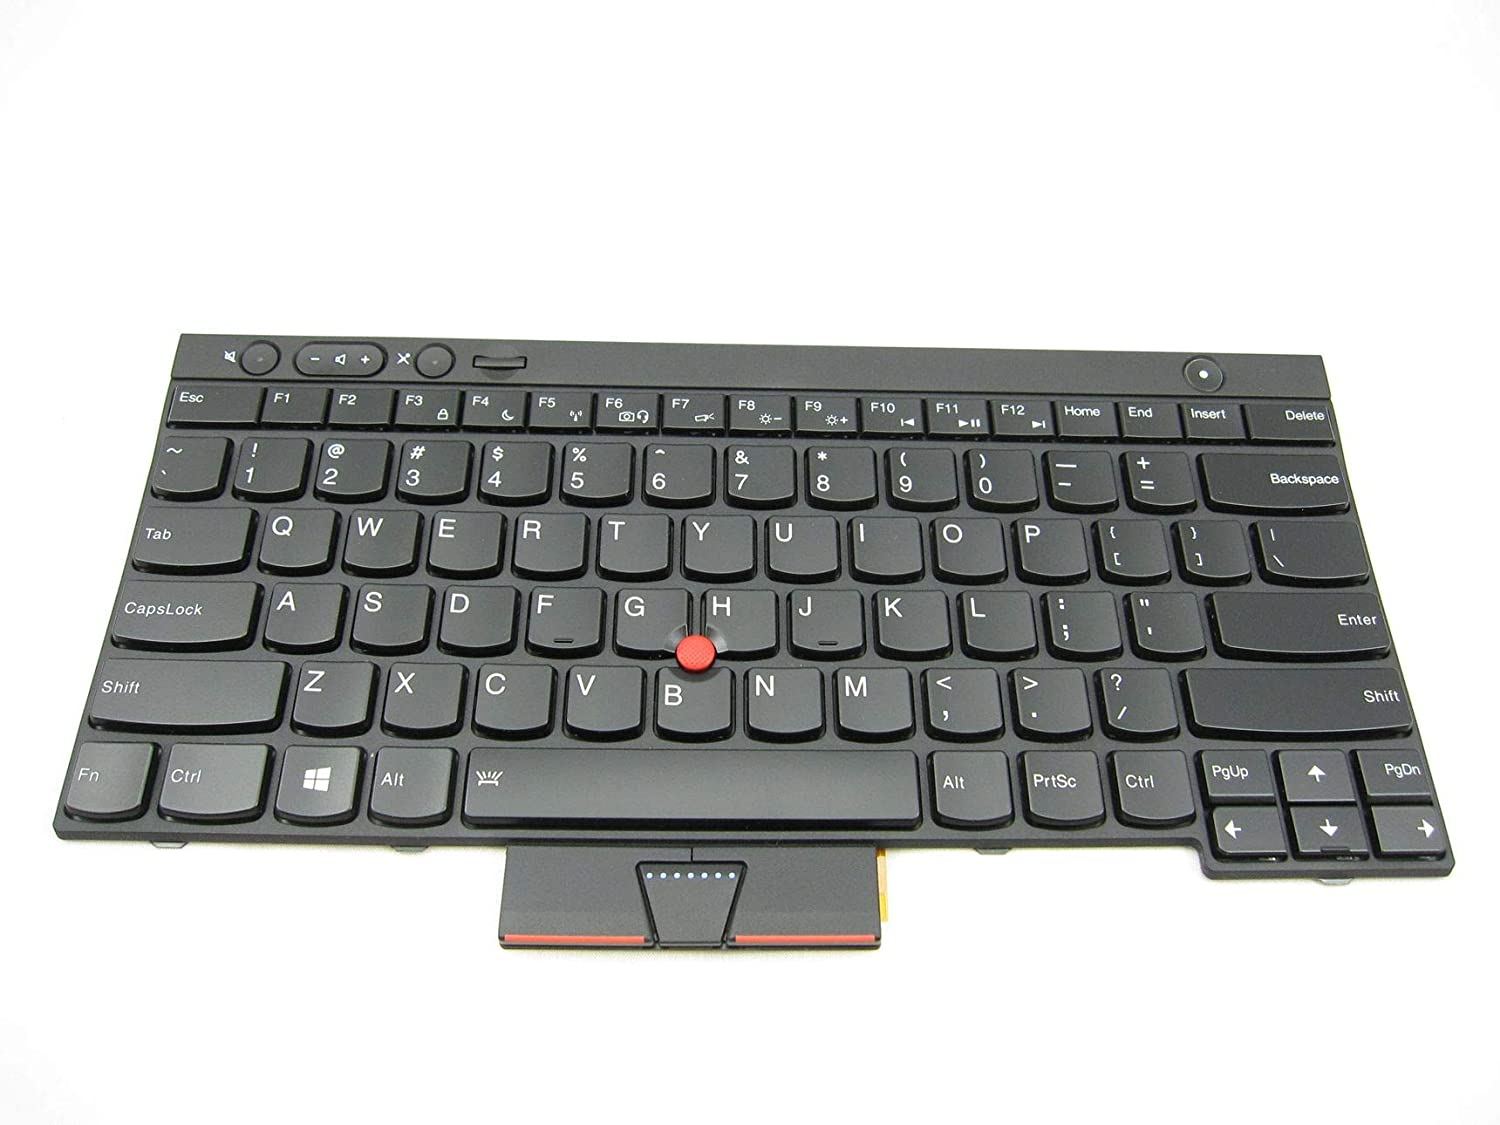 Tellus Remarketing APS Lenovo L430 L530 T430 T530 X230 W530 US Internationale Hintergrundbeleuchtung Tastatur